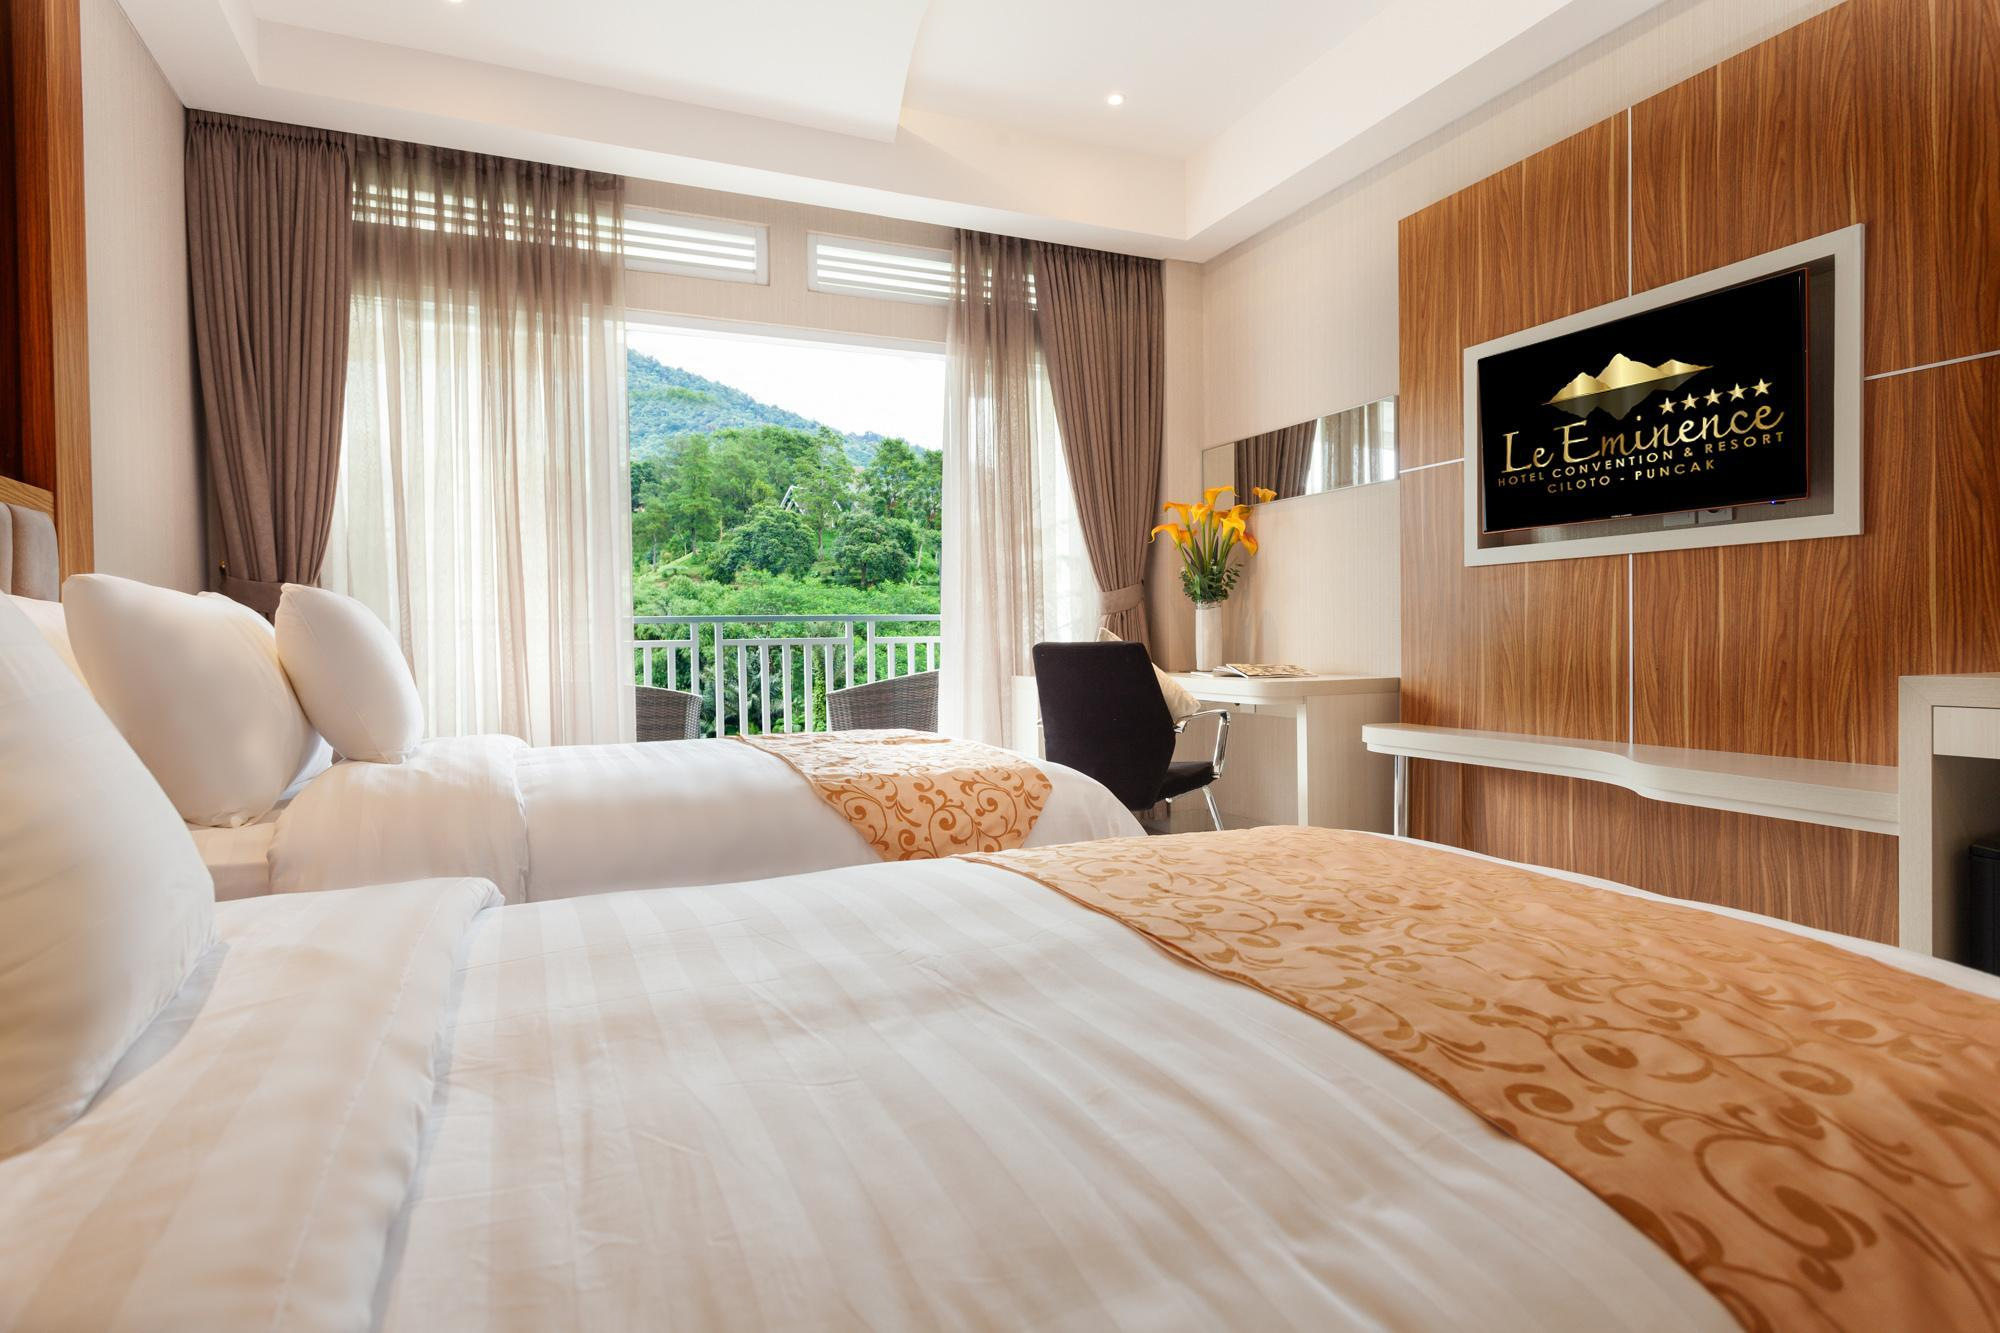 Le Eminence Hotel Convention and Resort